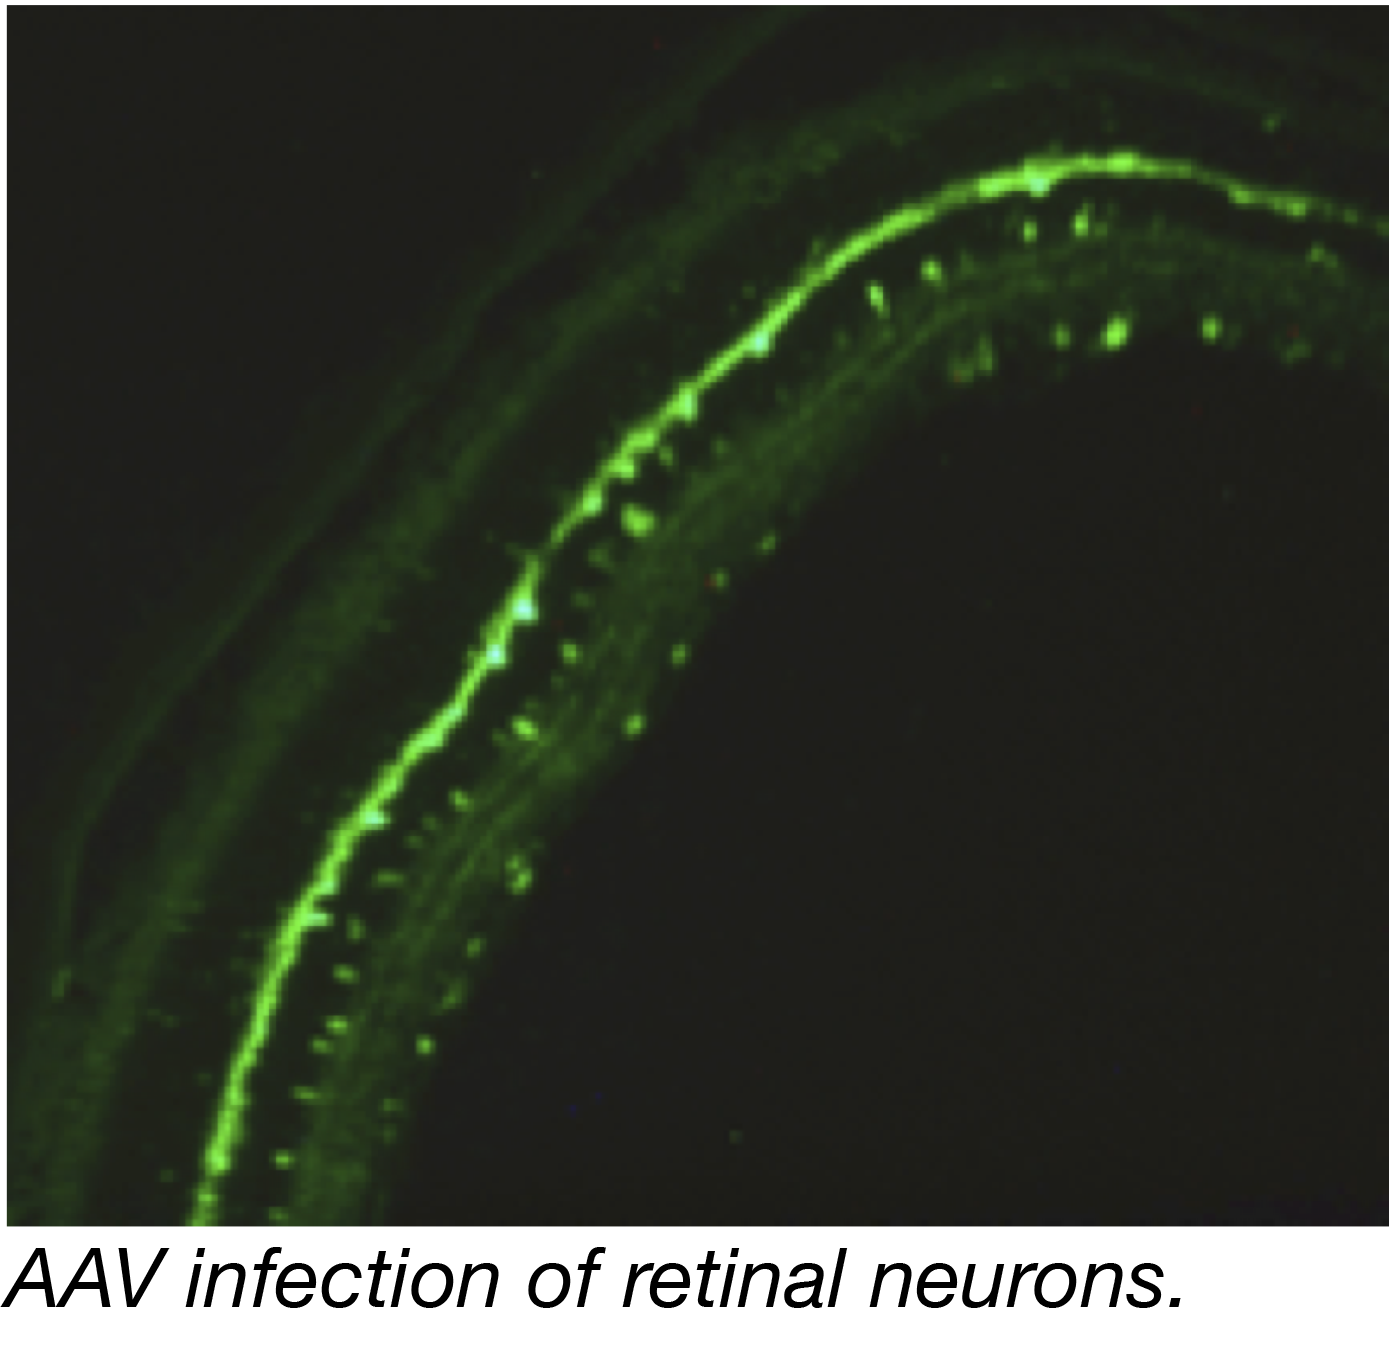 AAV Infection of Retinal Neurons Captioned